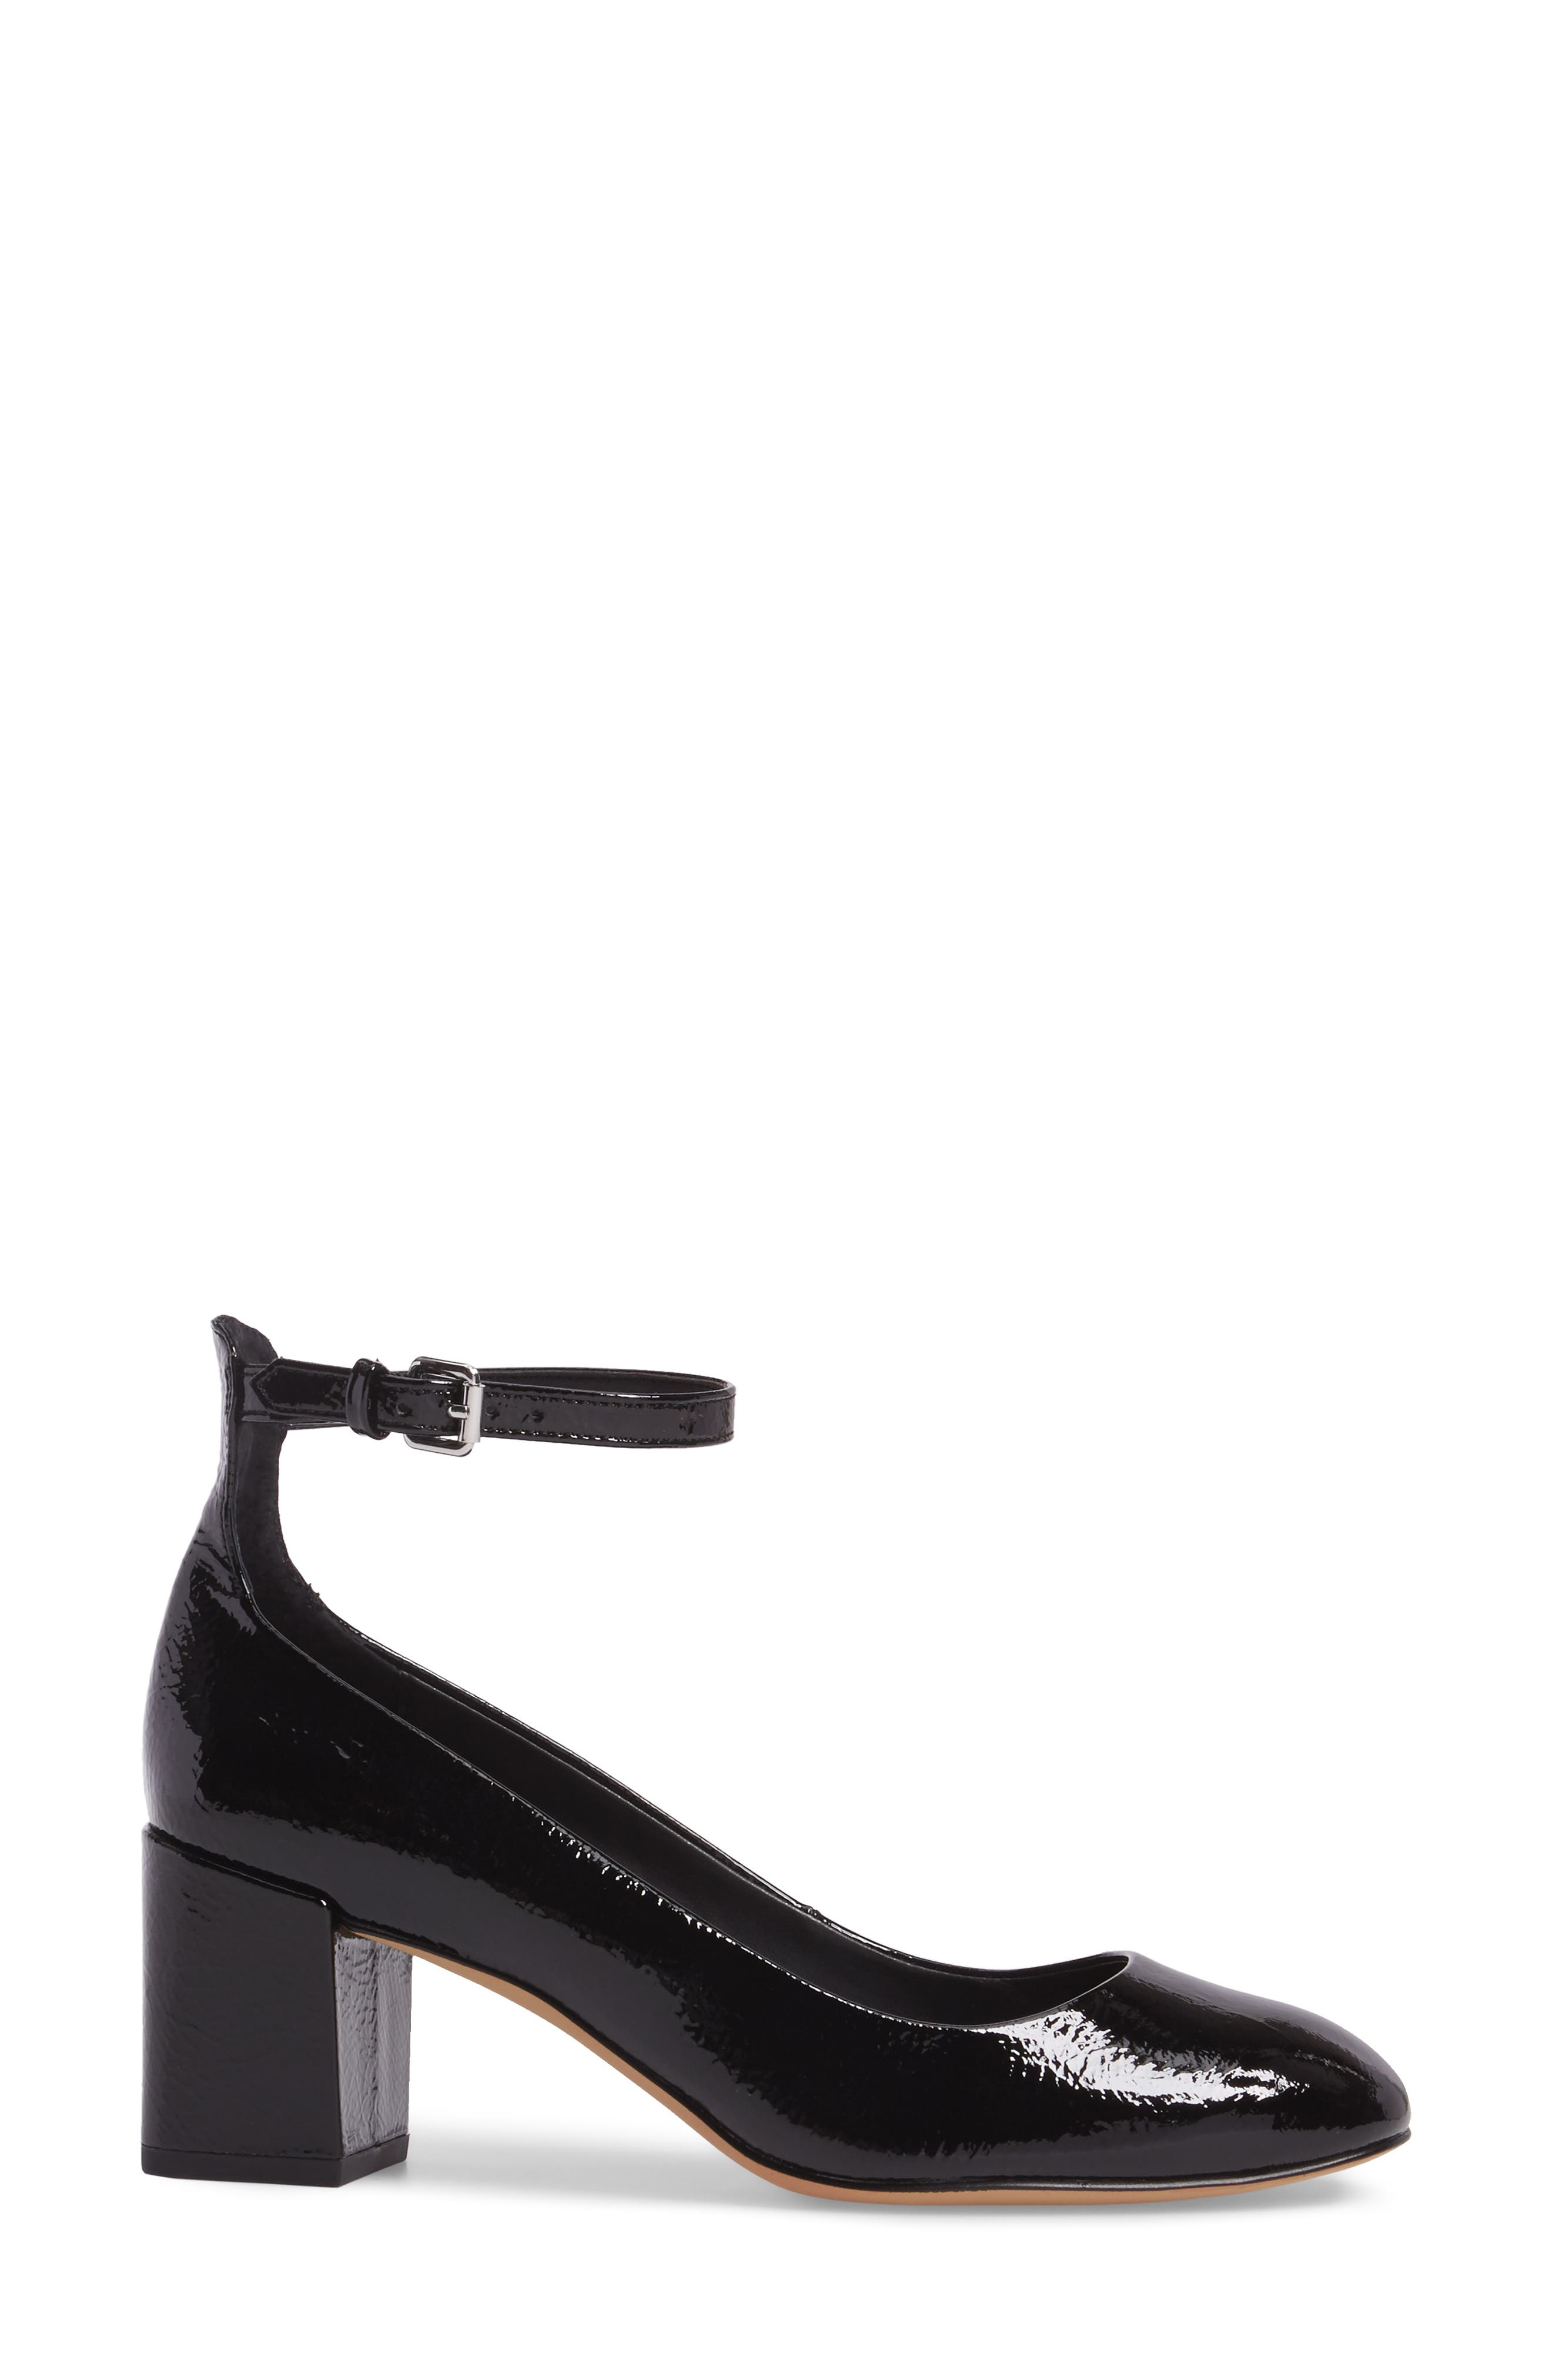 Bridget Ankle Strap Pump,                             Alternate thumbnail 3, color,                             001